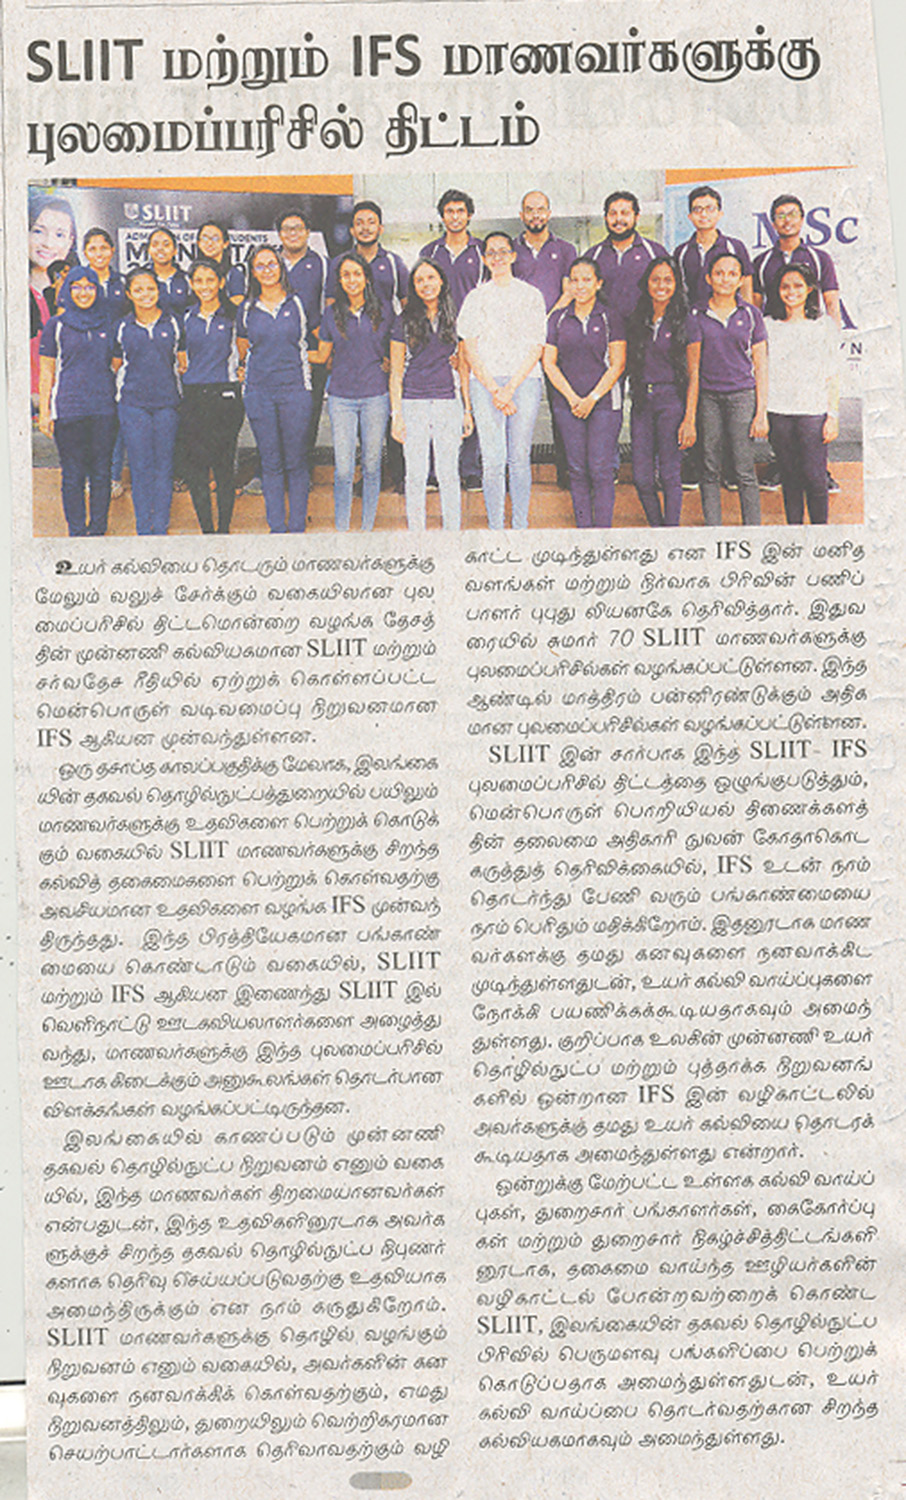 SLIIT-and-IFS-Collaboration-Continues-to-Empower-Students-through-Unique-Scholarship-Scheme-Sunday-Thinakkural-23-12-2018